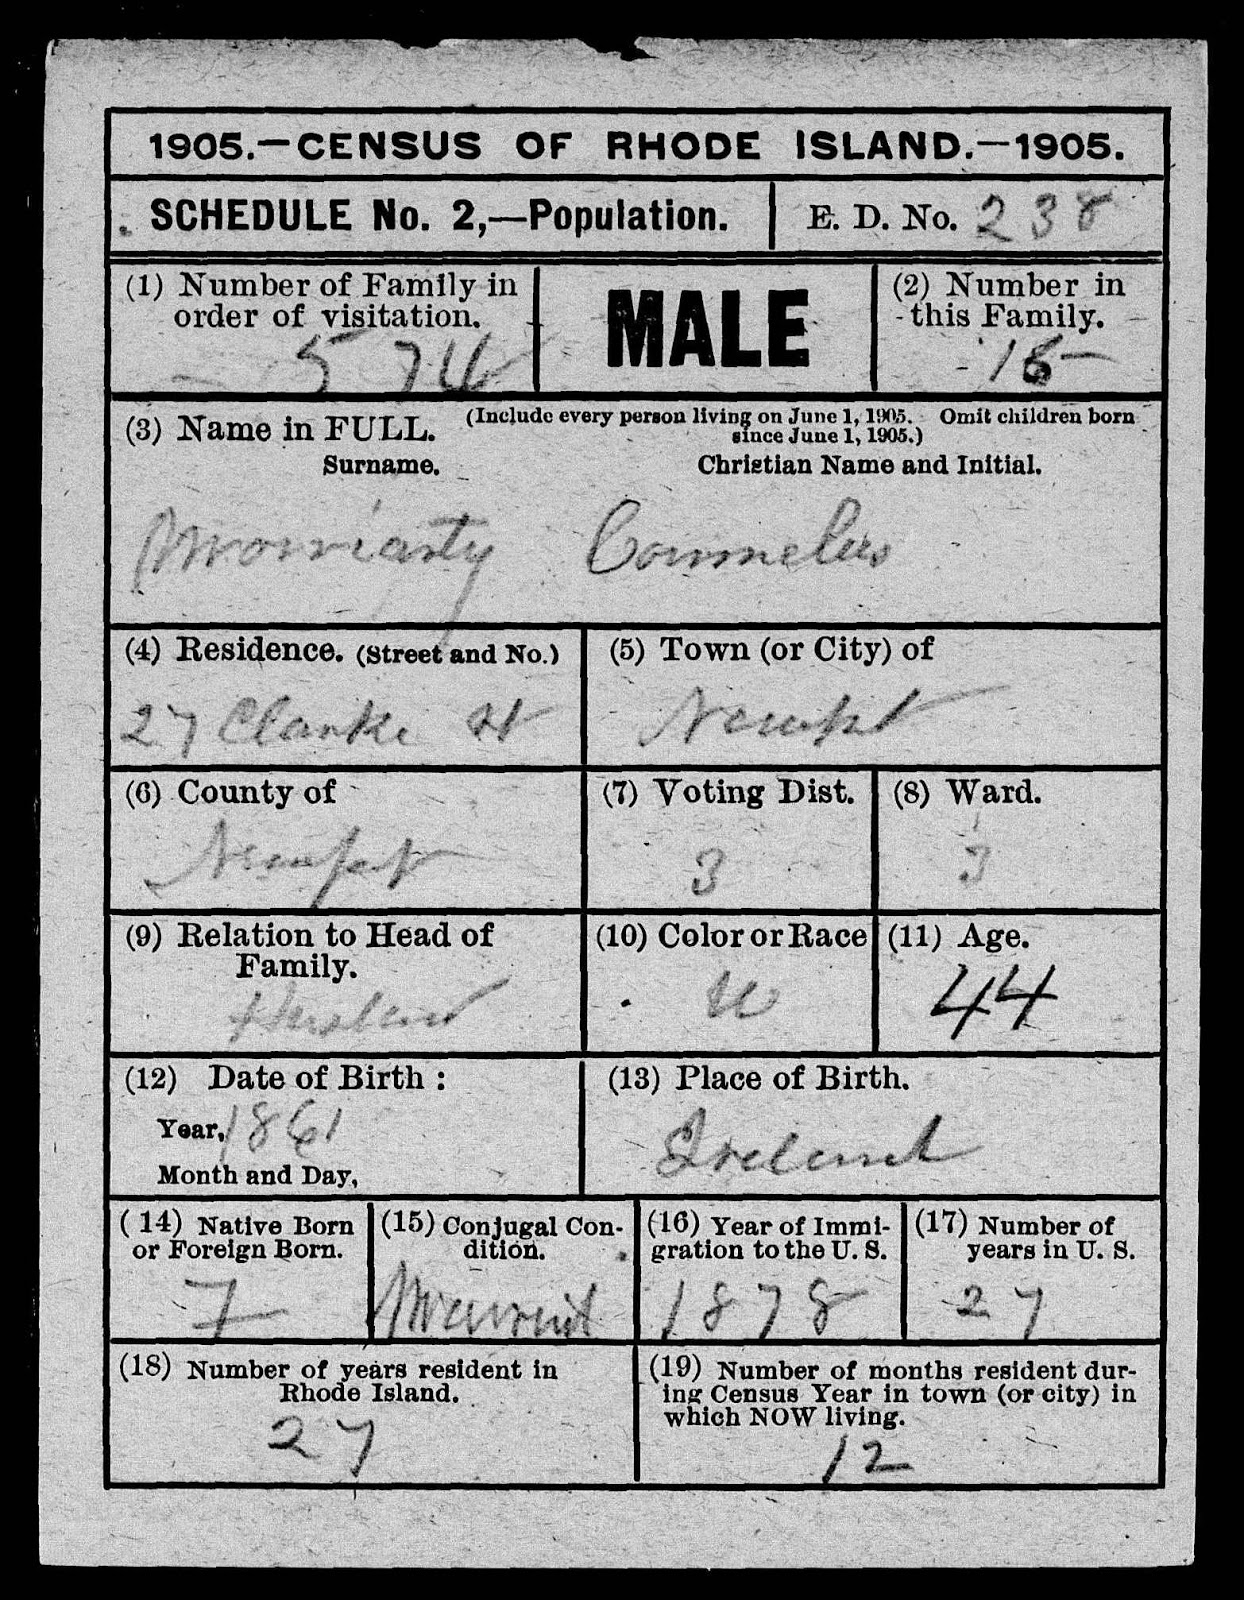 My family story july 2013 cons parents were born in ireland he is a naturalized citizen i cant make out what it says in box 23 re voter is it property or proprietor 1betcityfo Choice Image